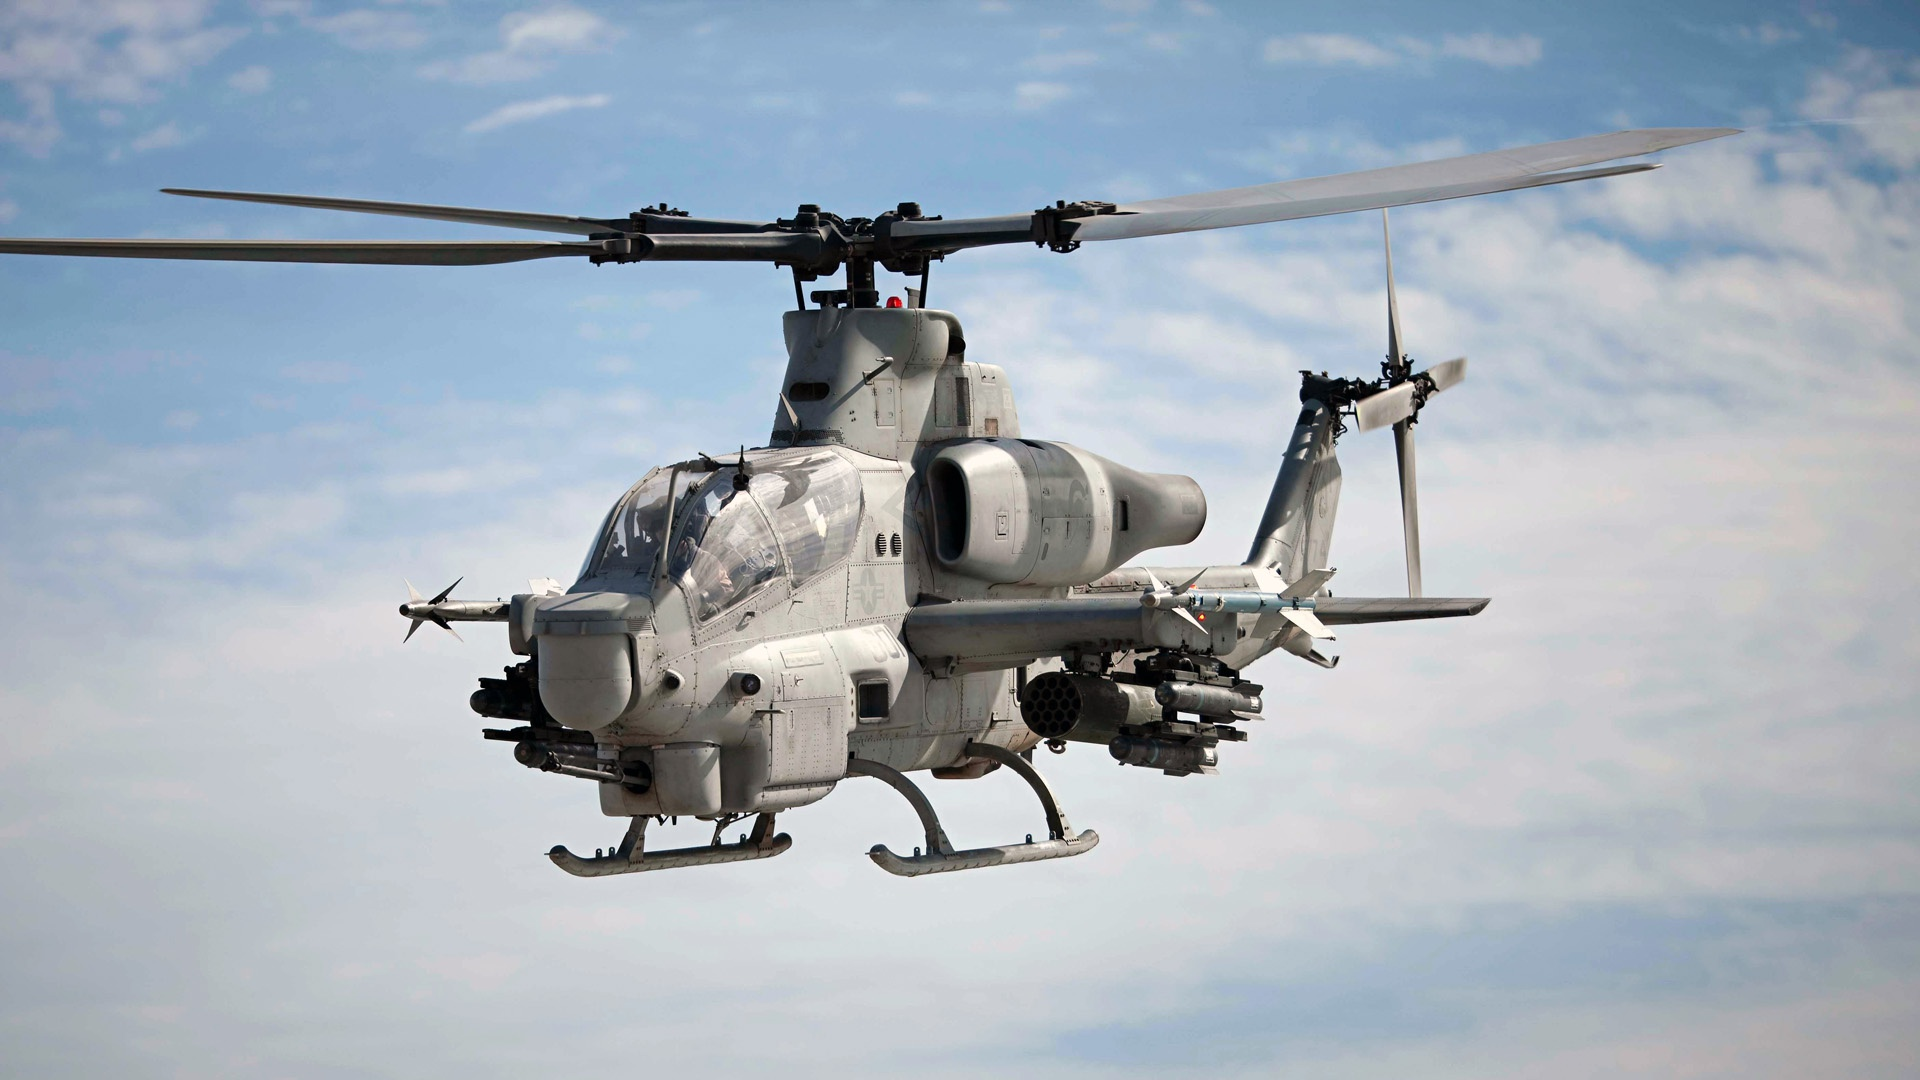 2 Bell AH-1Z Viper most powerful military helicopters